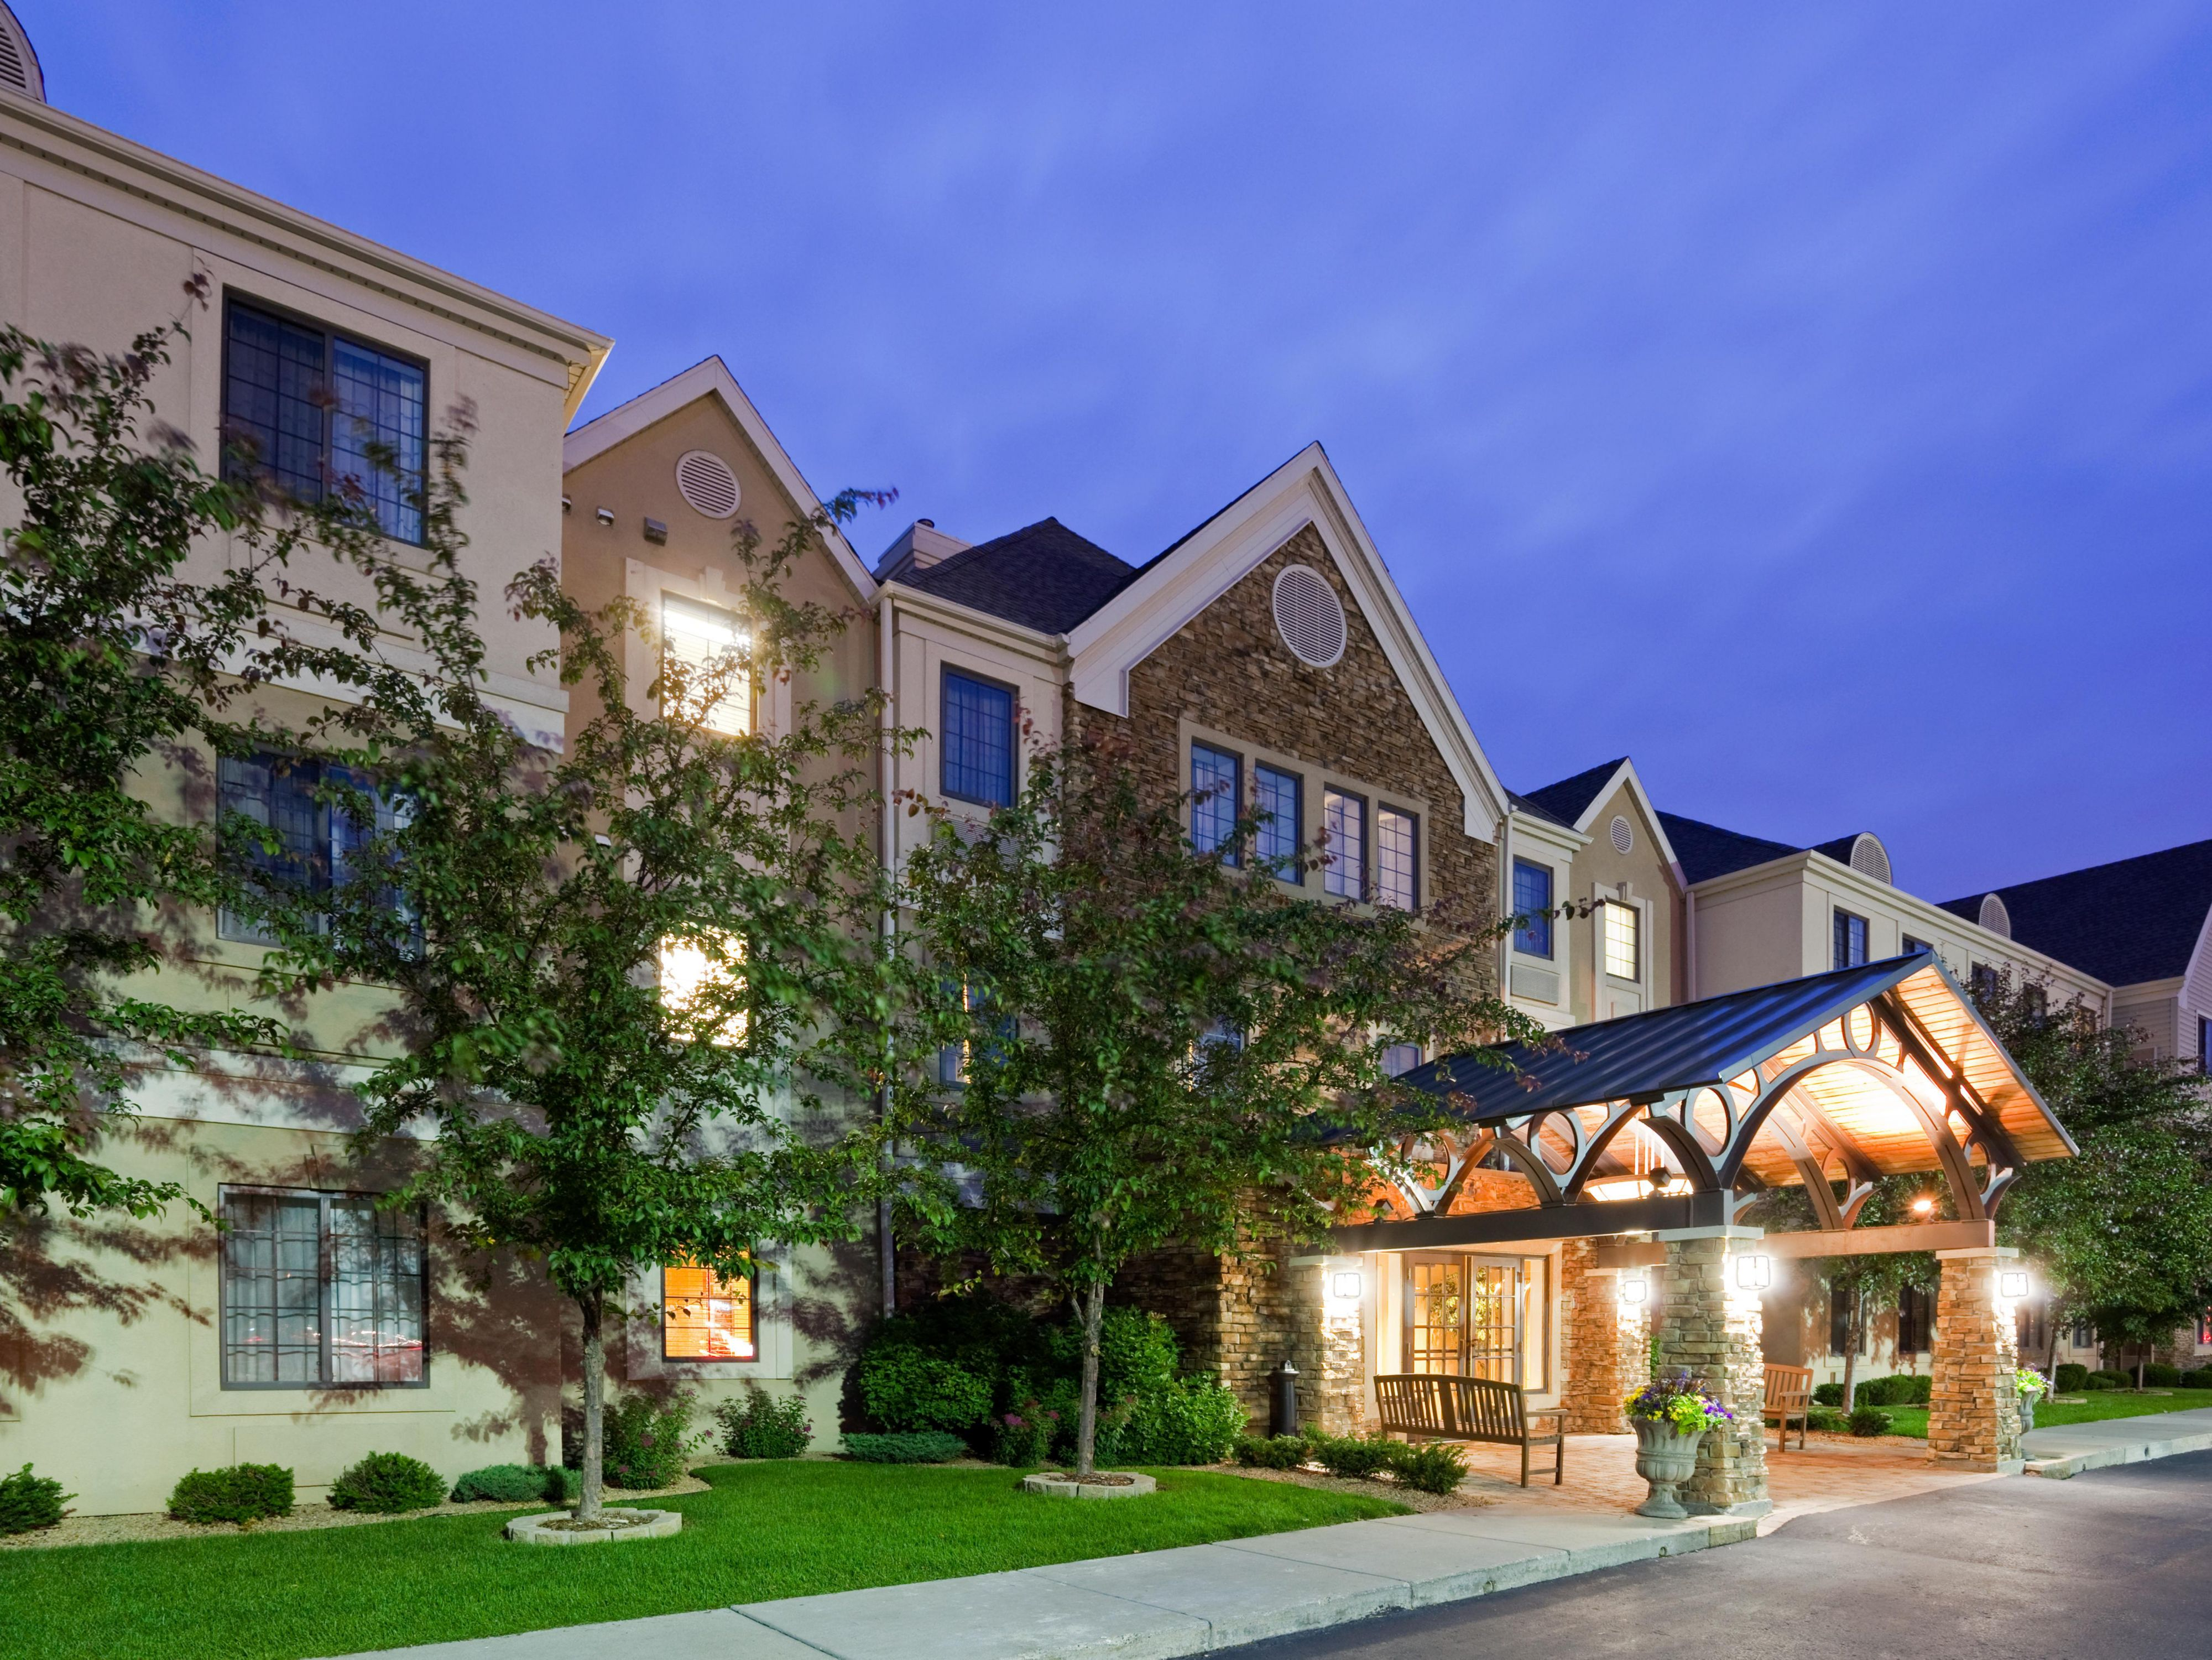 Staybridge Suites Eagan Arpt South - Mall Area - Extended Stay Hotel in  Eagan, United States with Full Kitchen